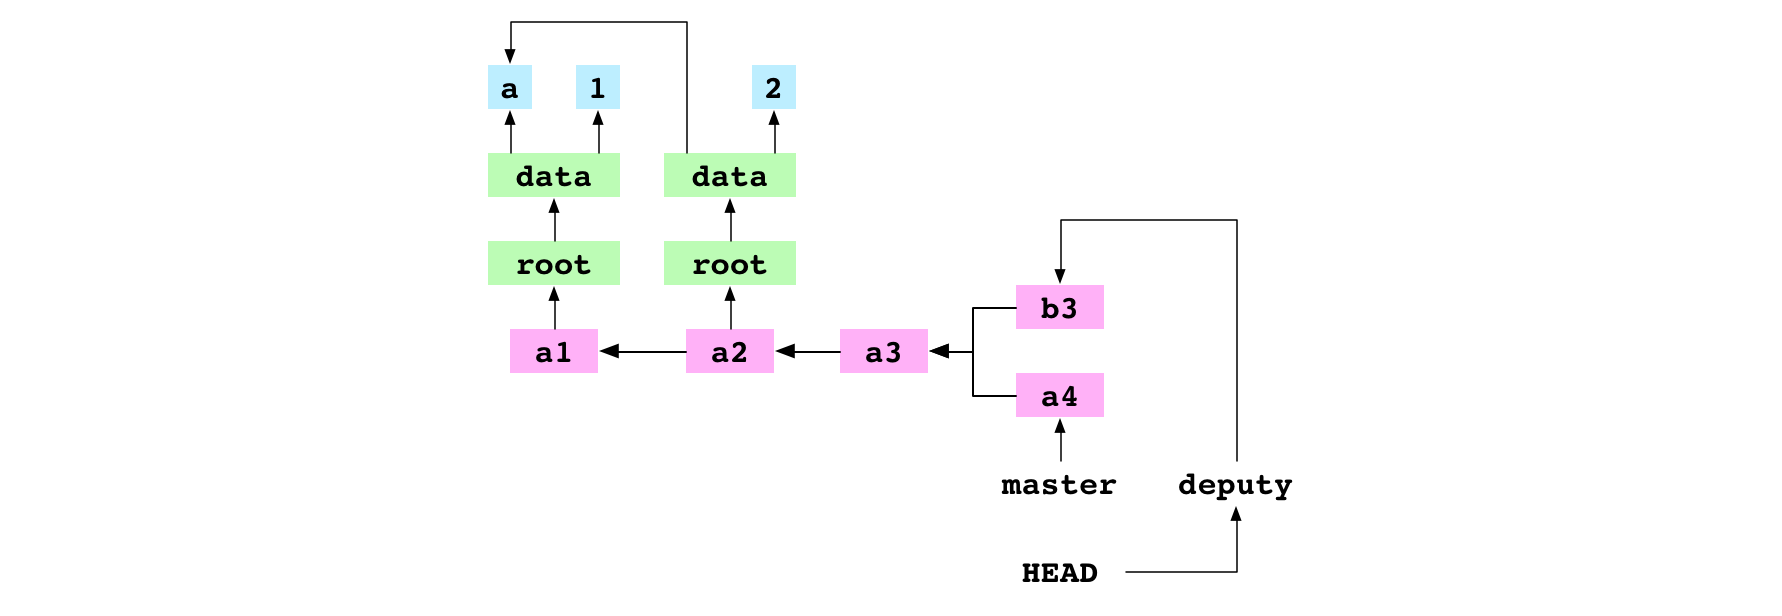 `a3`, the base commit of `a4` and `b3`